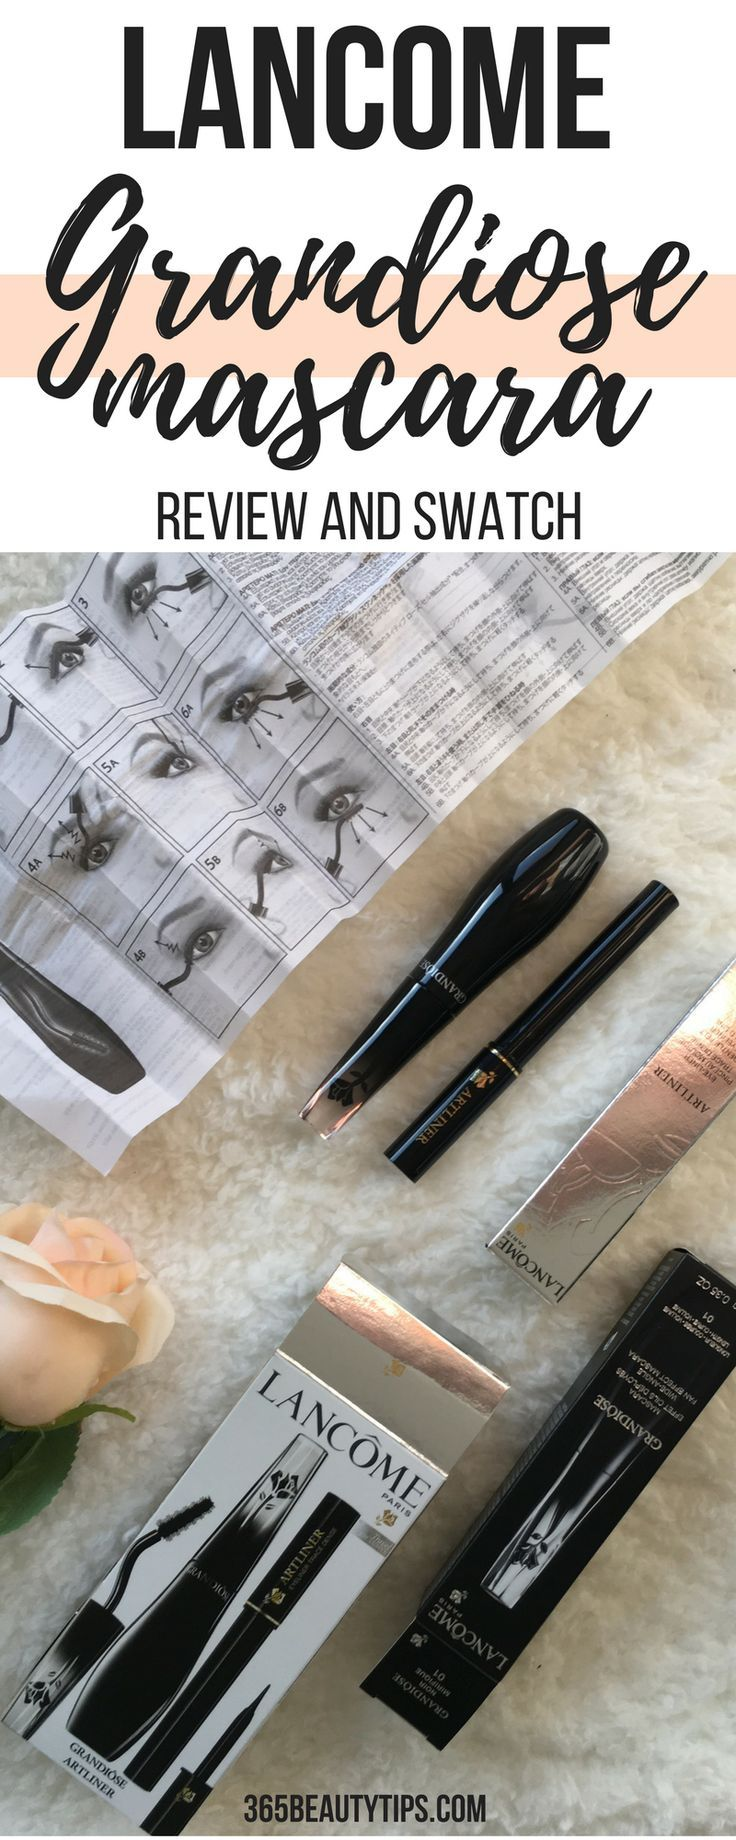 Lancome Grandiose #mascara - review and swatch. #makeup #review #lancome